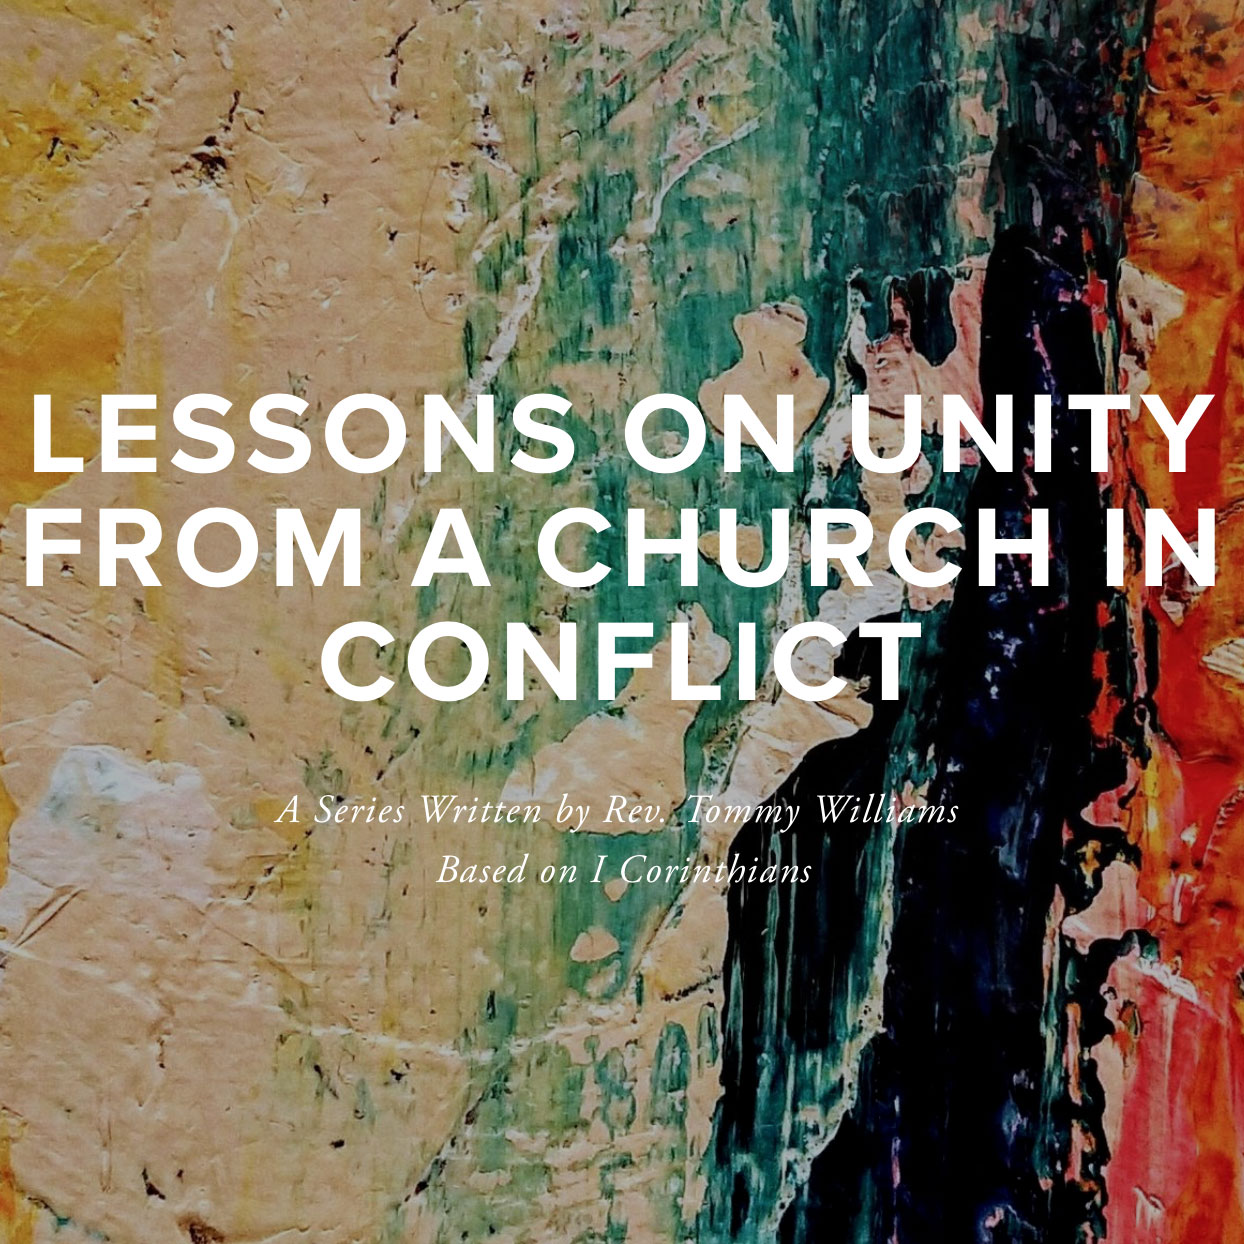 Lessons on Unity from a Church in Conflict - In this series written by Rev. Tommy Williams, we consider how we can learn from scriptural lessons on unity from the apostle Paul's first letter to the Corinthian church. { Fall/Winter 2018–19 }